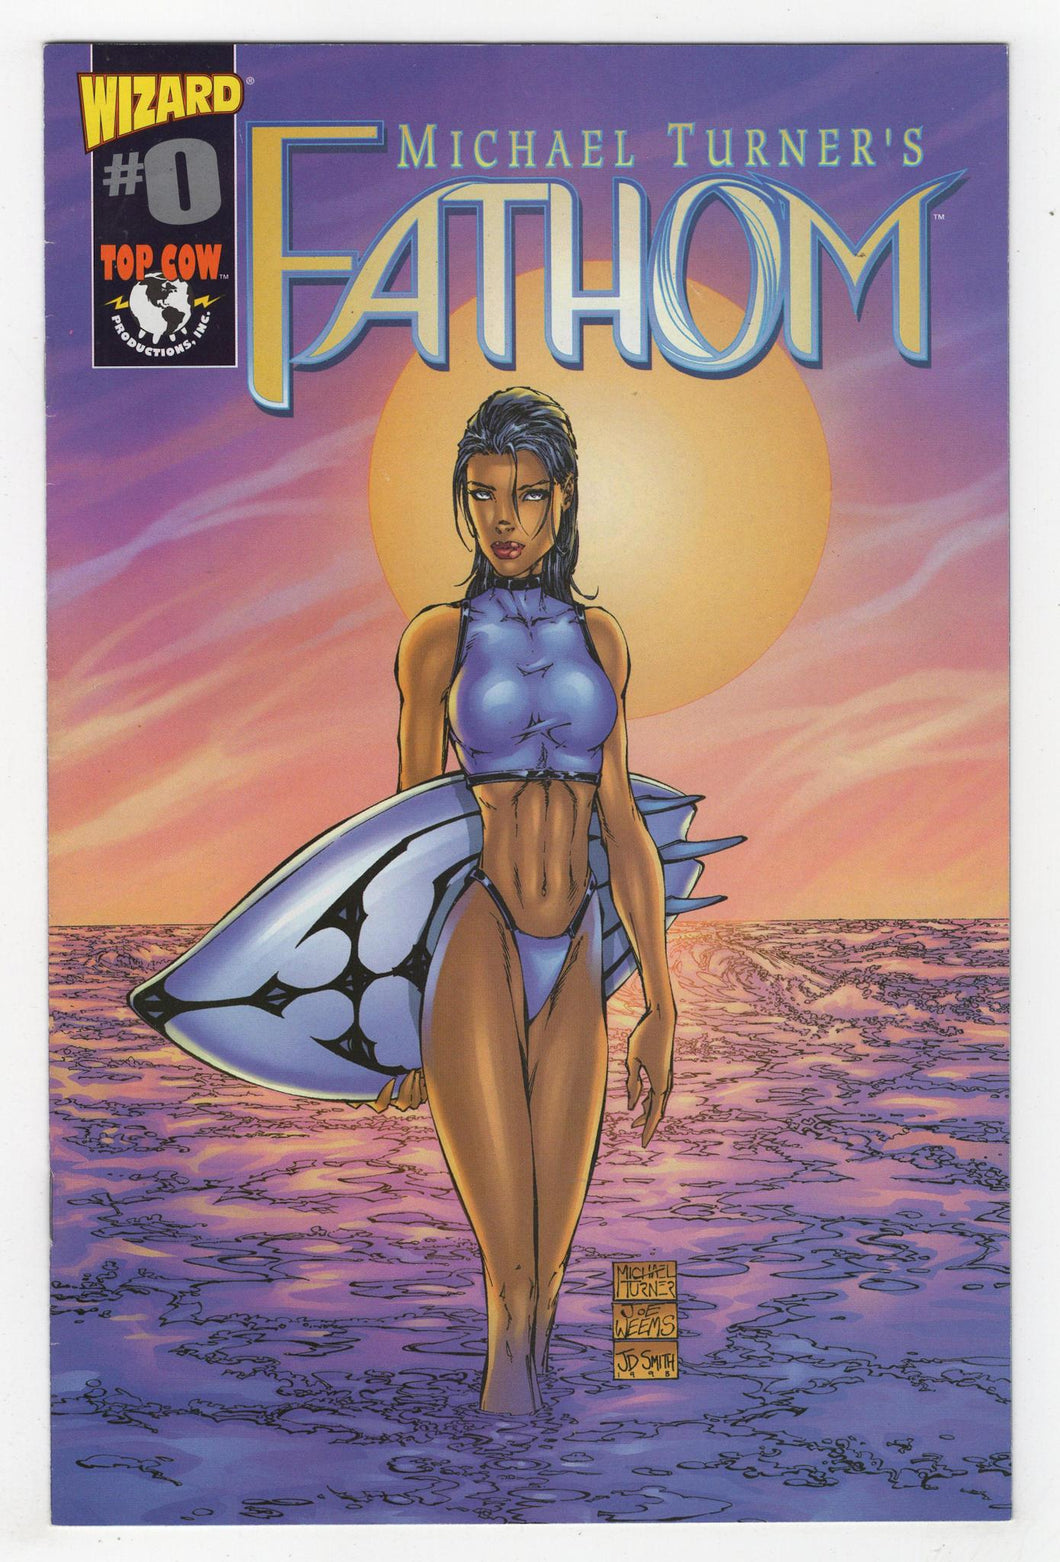 Fathom Wizard #0 Cover Front